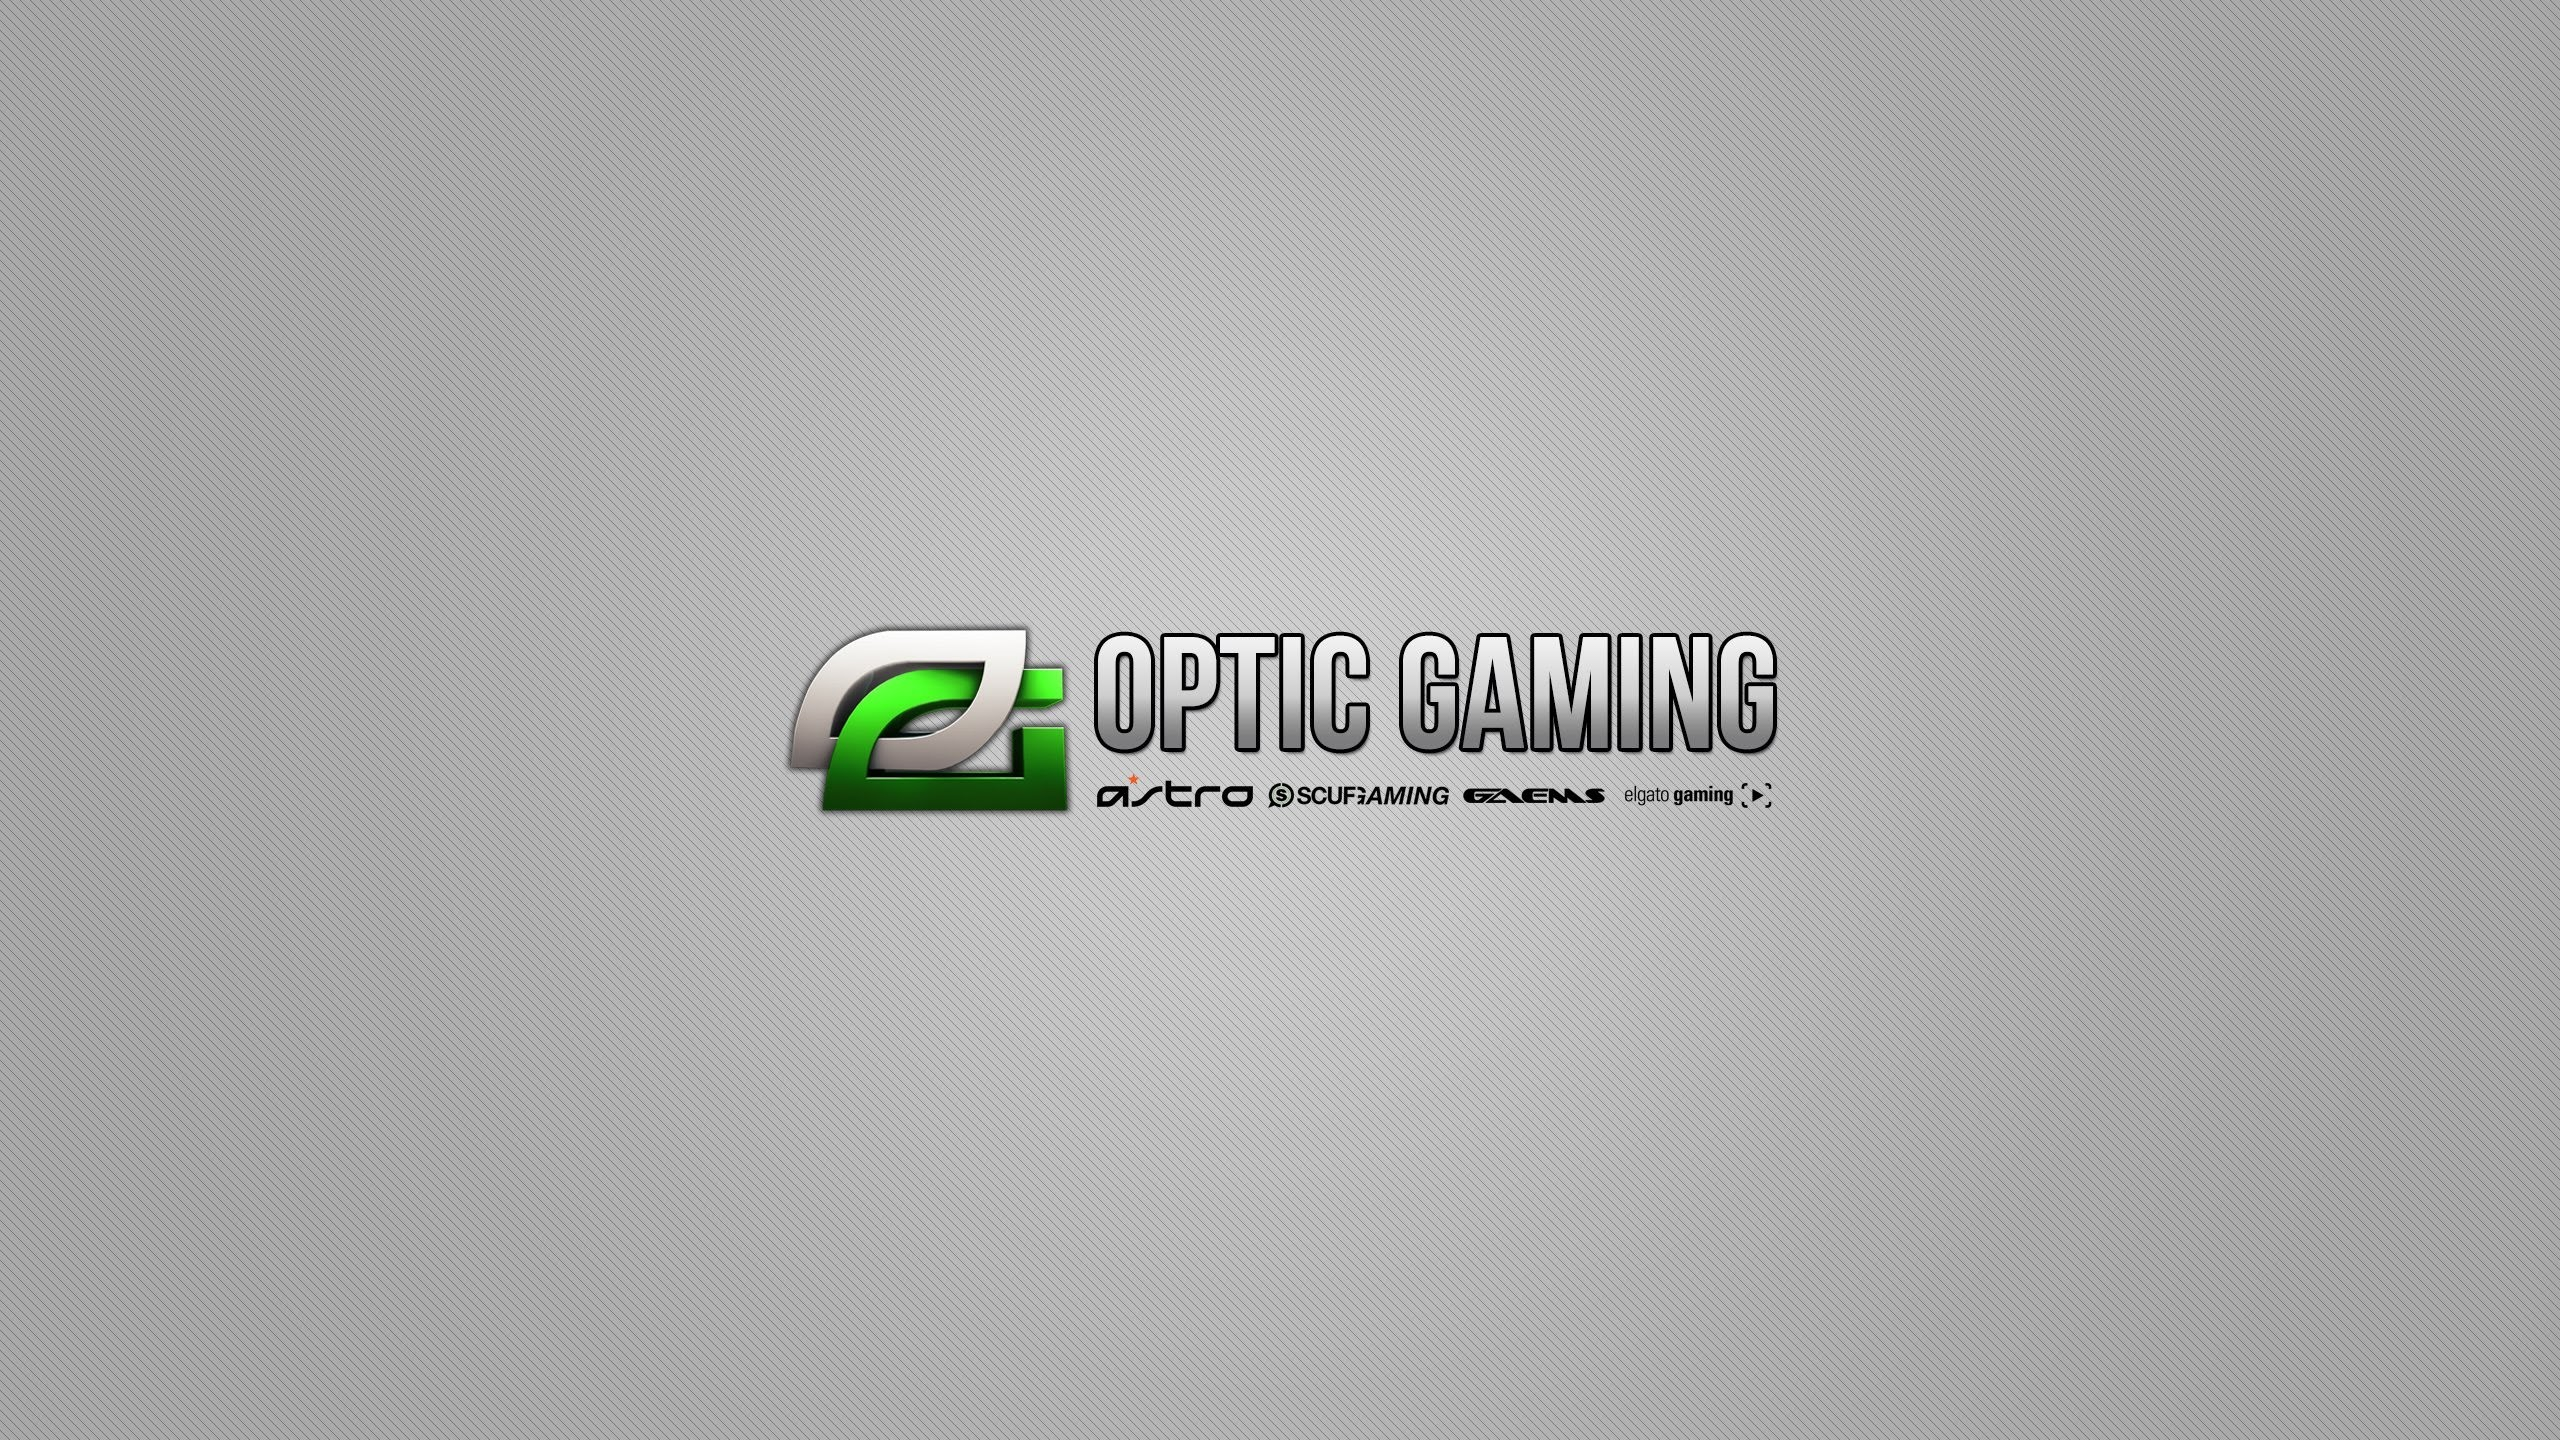 2560x1440 Optic Gaming Desktop Wallpaper  px, 2018